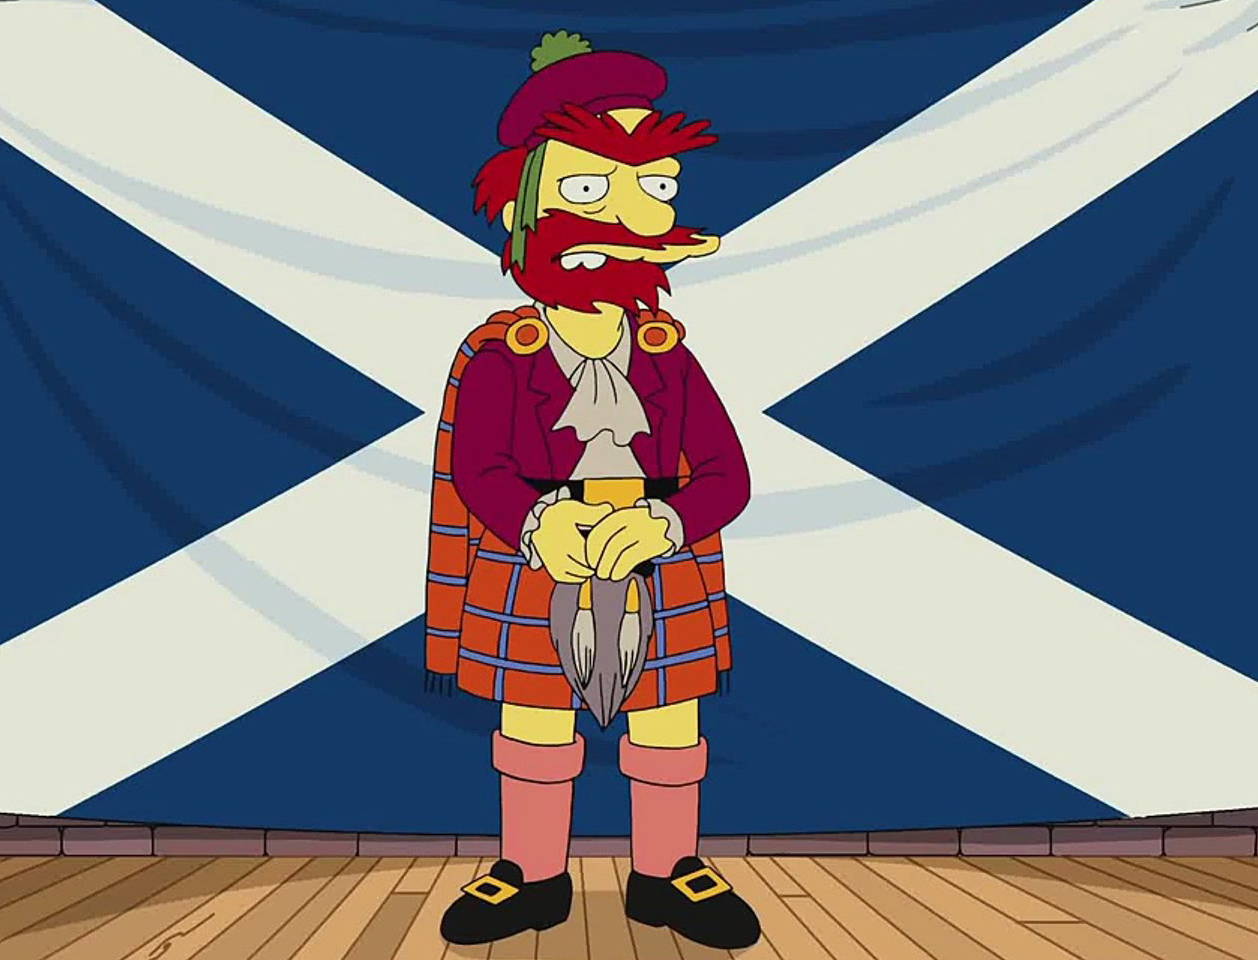 Groundskeeper Willie is a registered trademark of The Simpsons and 20th Century Fox